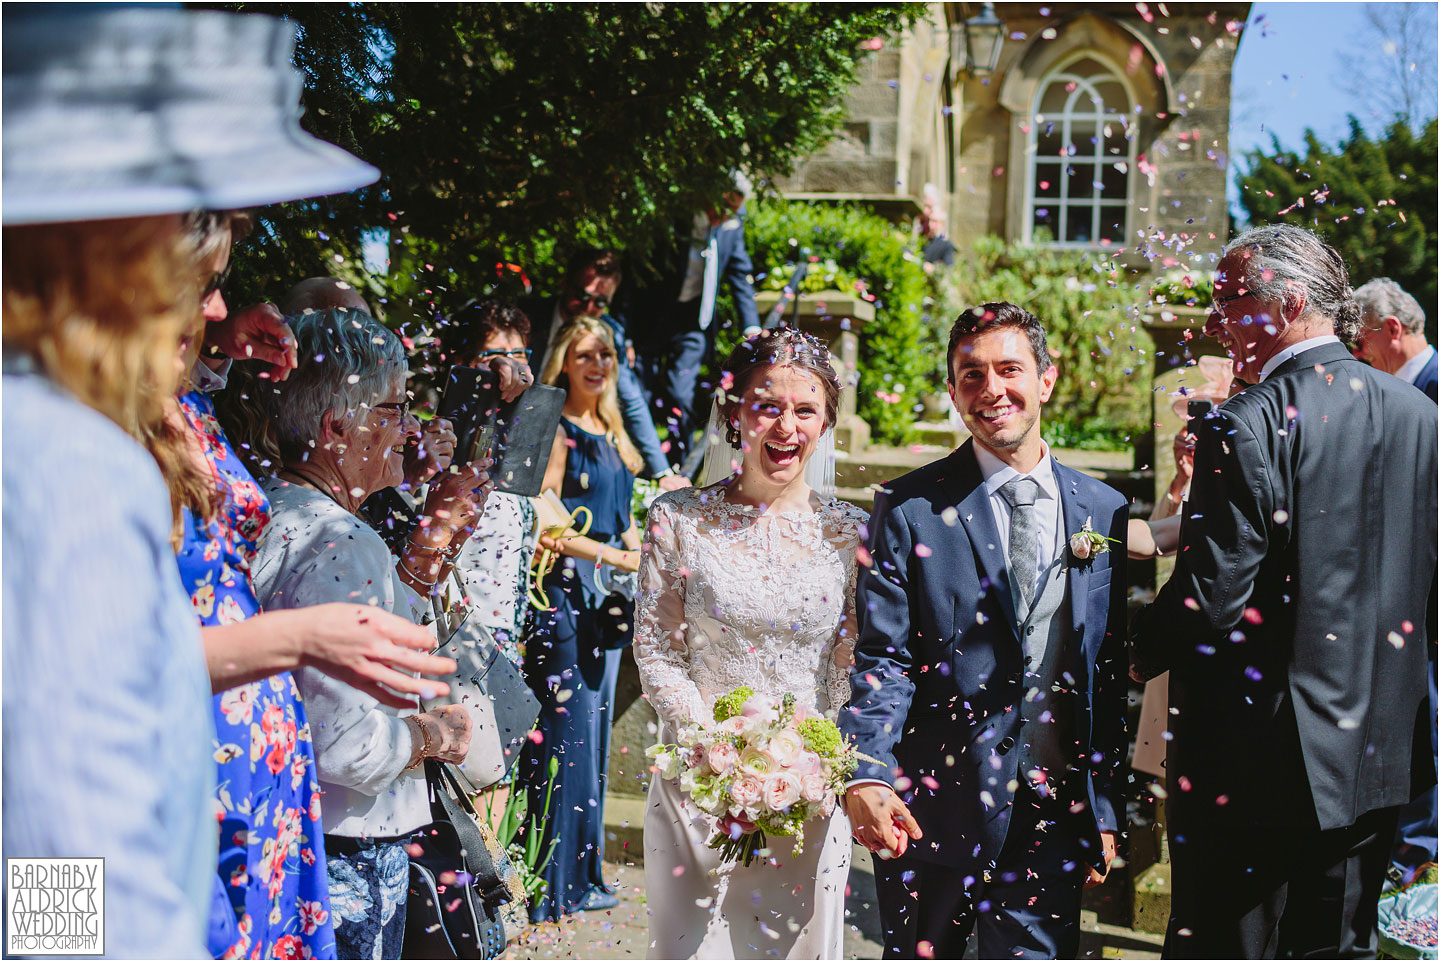 Wedding Confetti photo at St Helens Denton, exclusive country house in Ilkley in West Yorkshire, great confetti shot